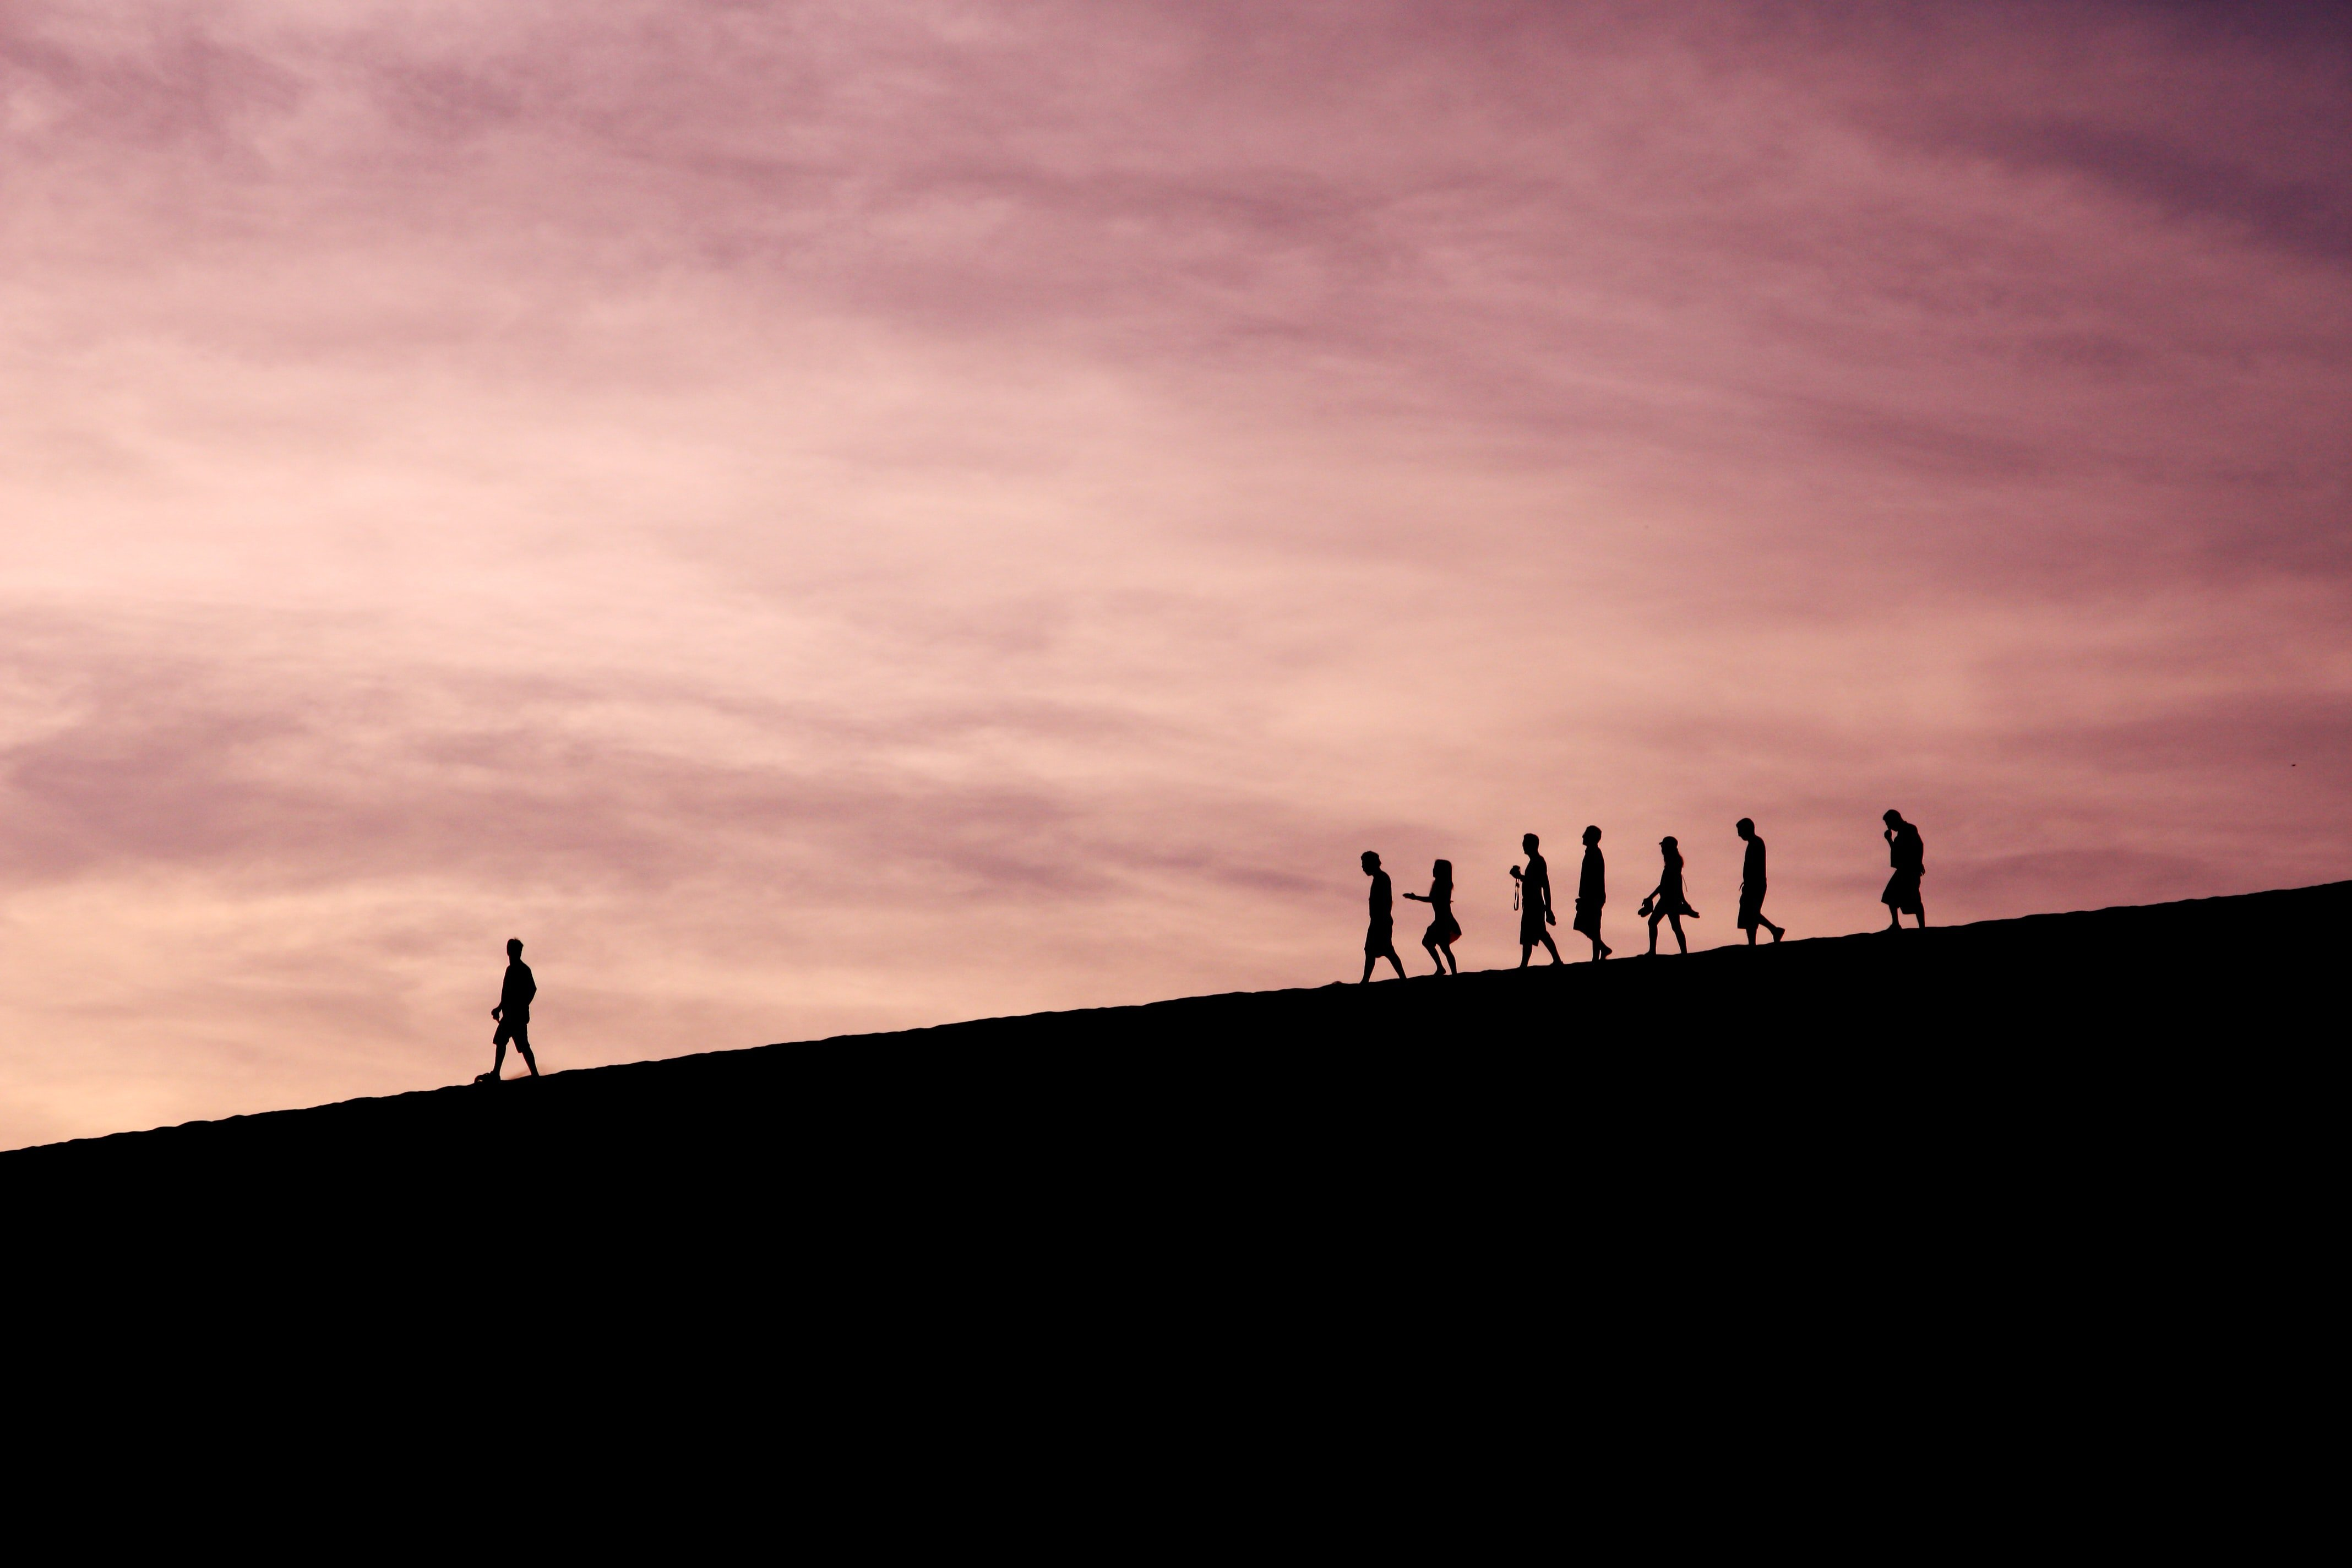 people walking in line on top of a hill; pre-employment assessment